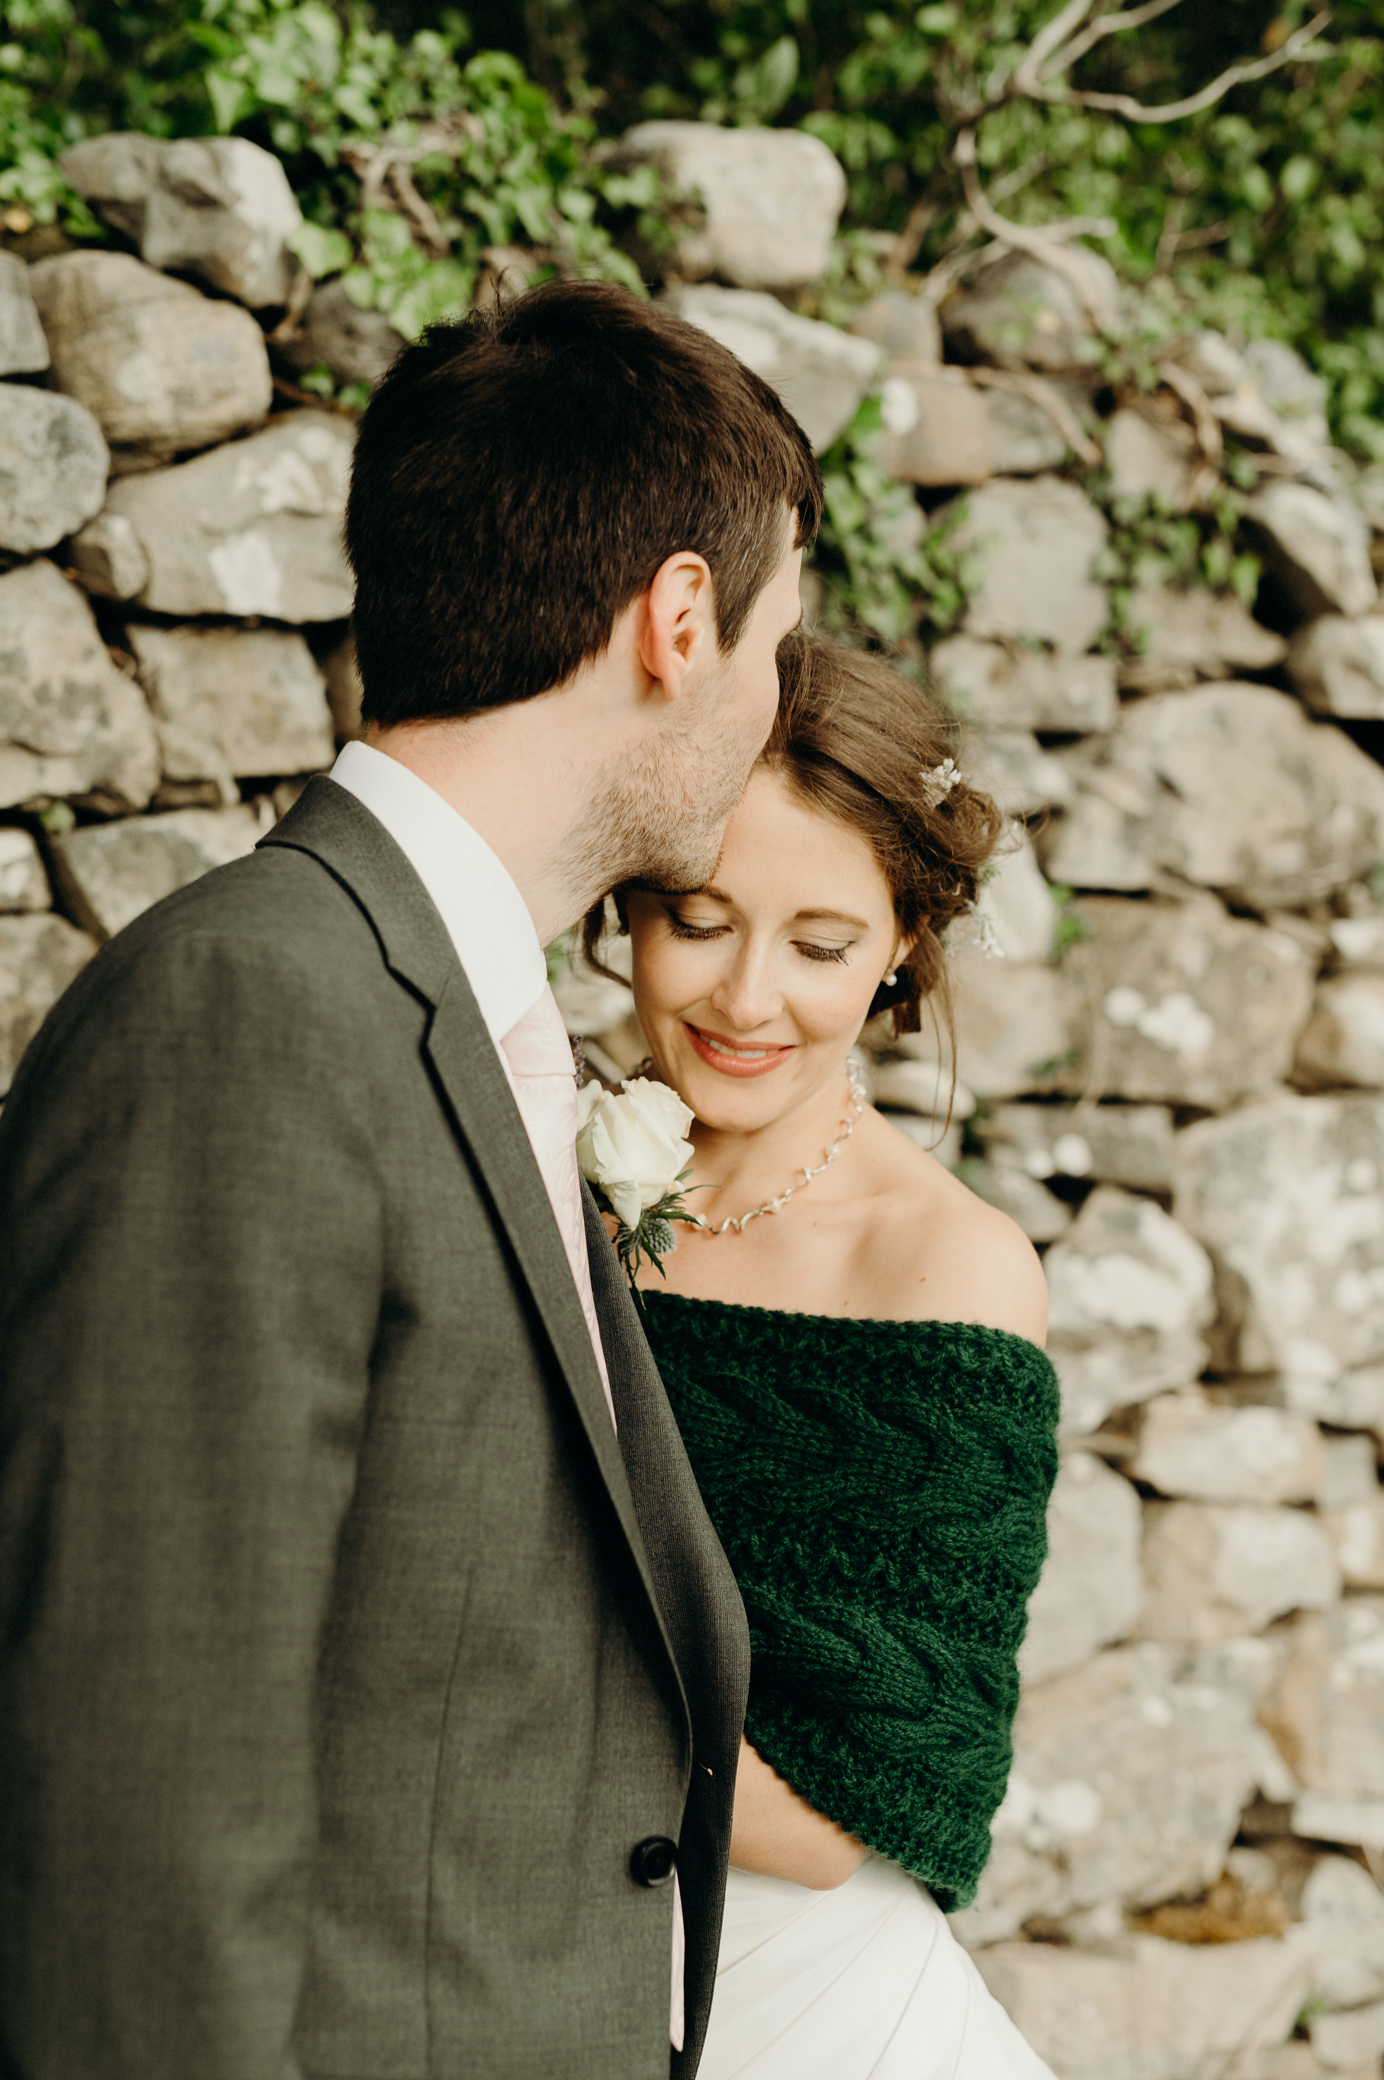 Alternative Wedding Ireland - Elopement photographer Ireland - Destination Photographer Europe-107.jpg